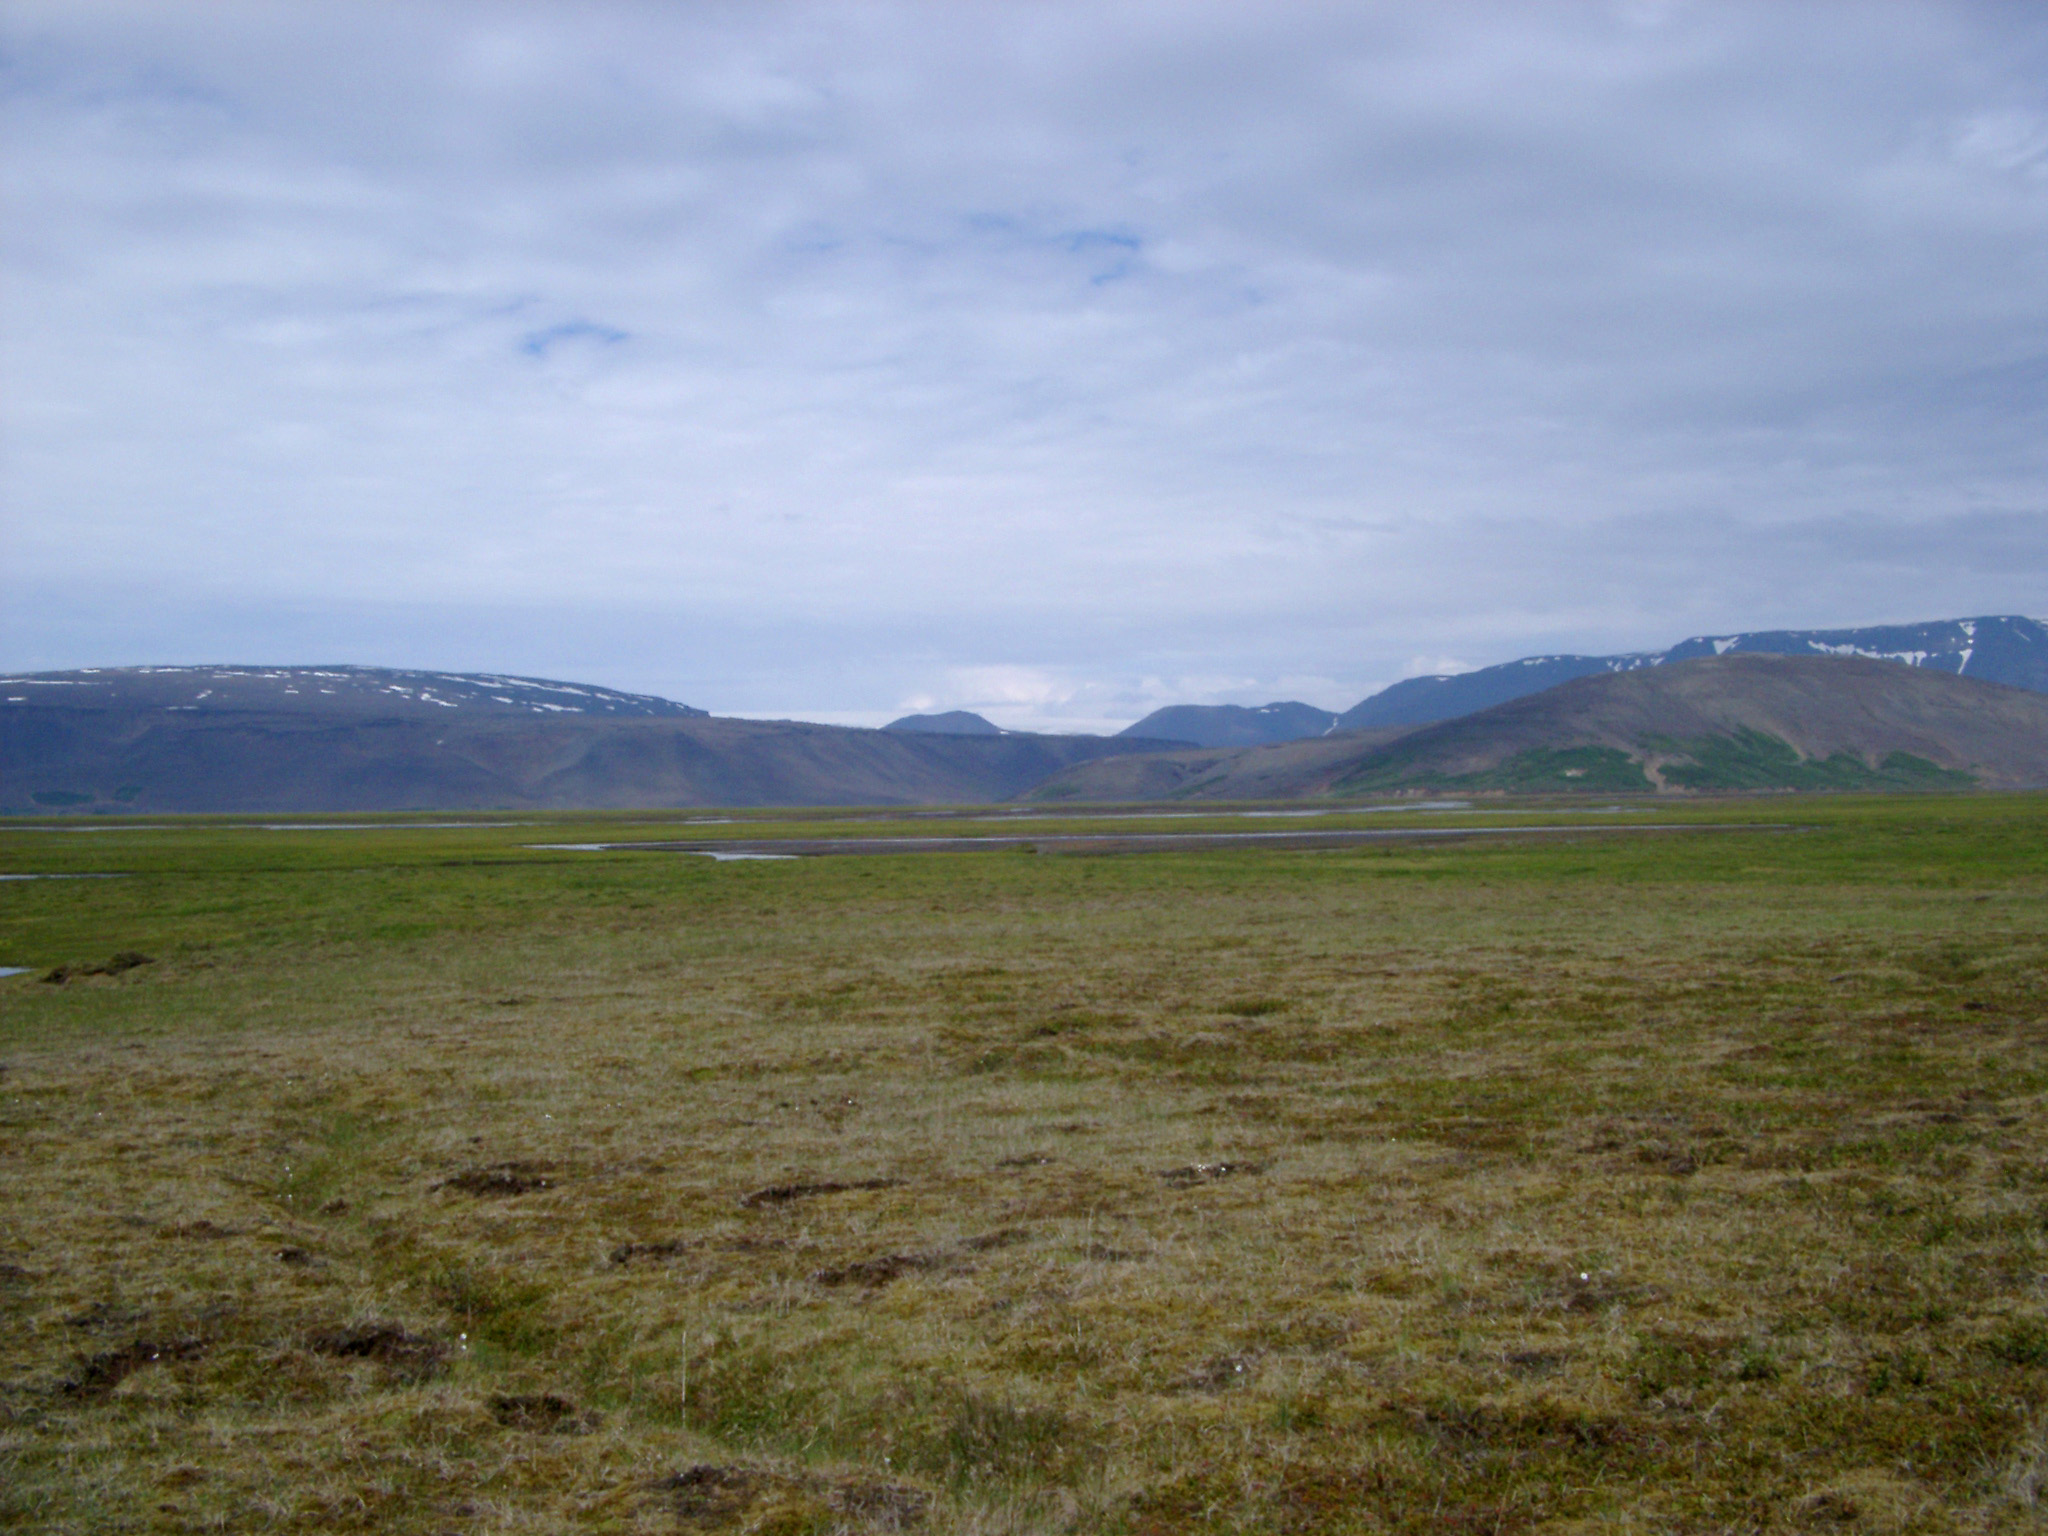 Scenic of Empty Field with Mountains and Overcast Sky in Iceland